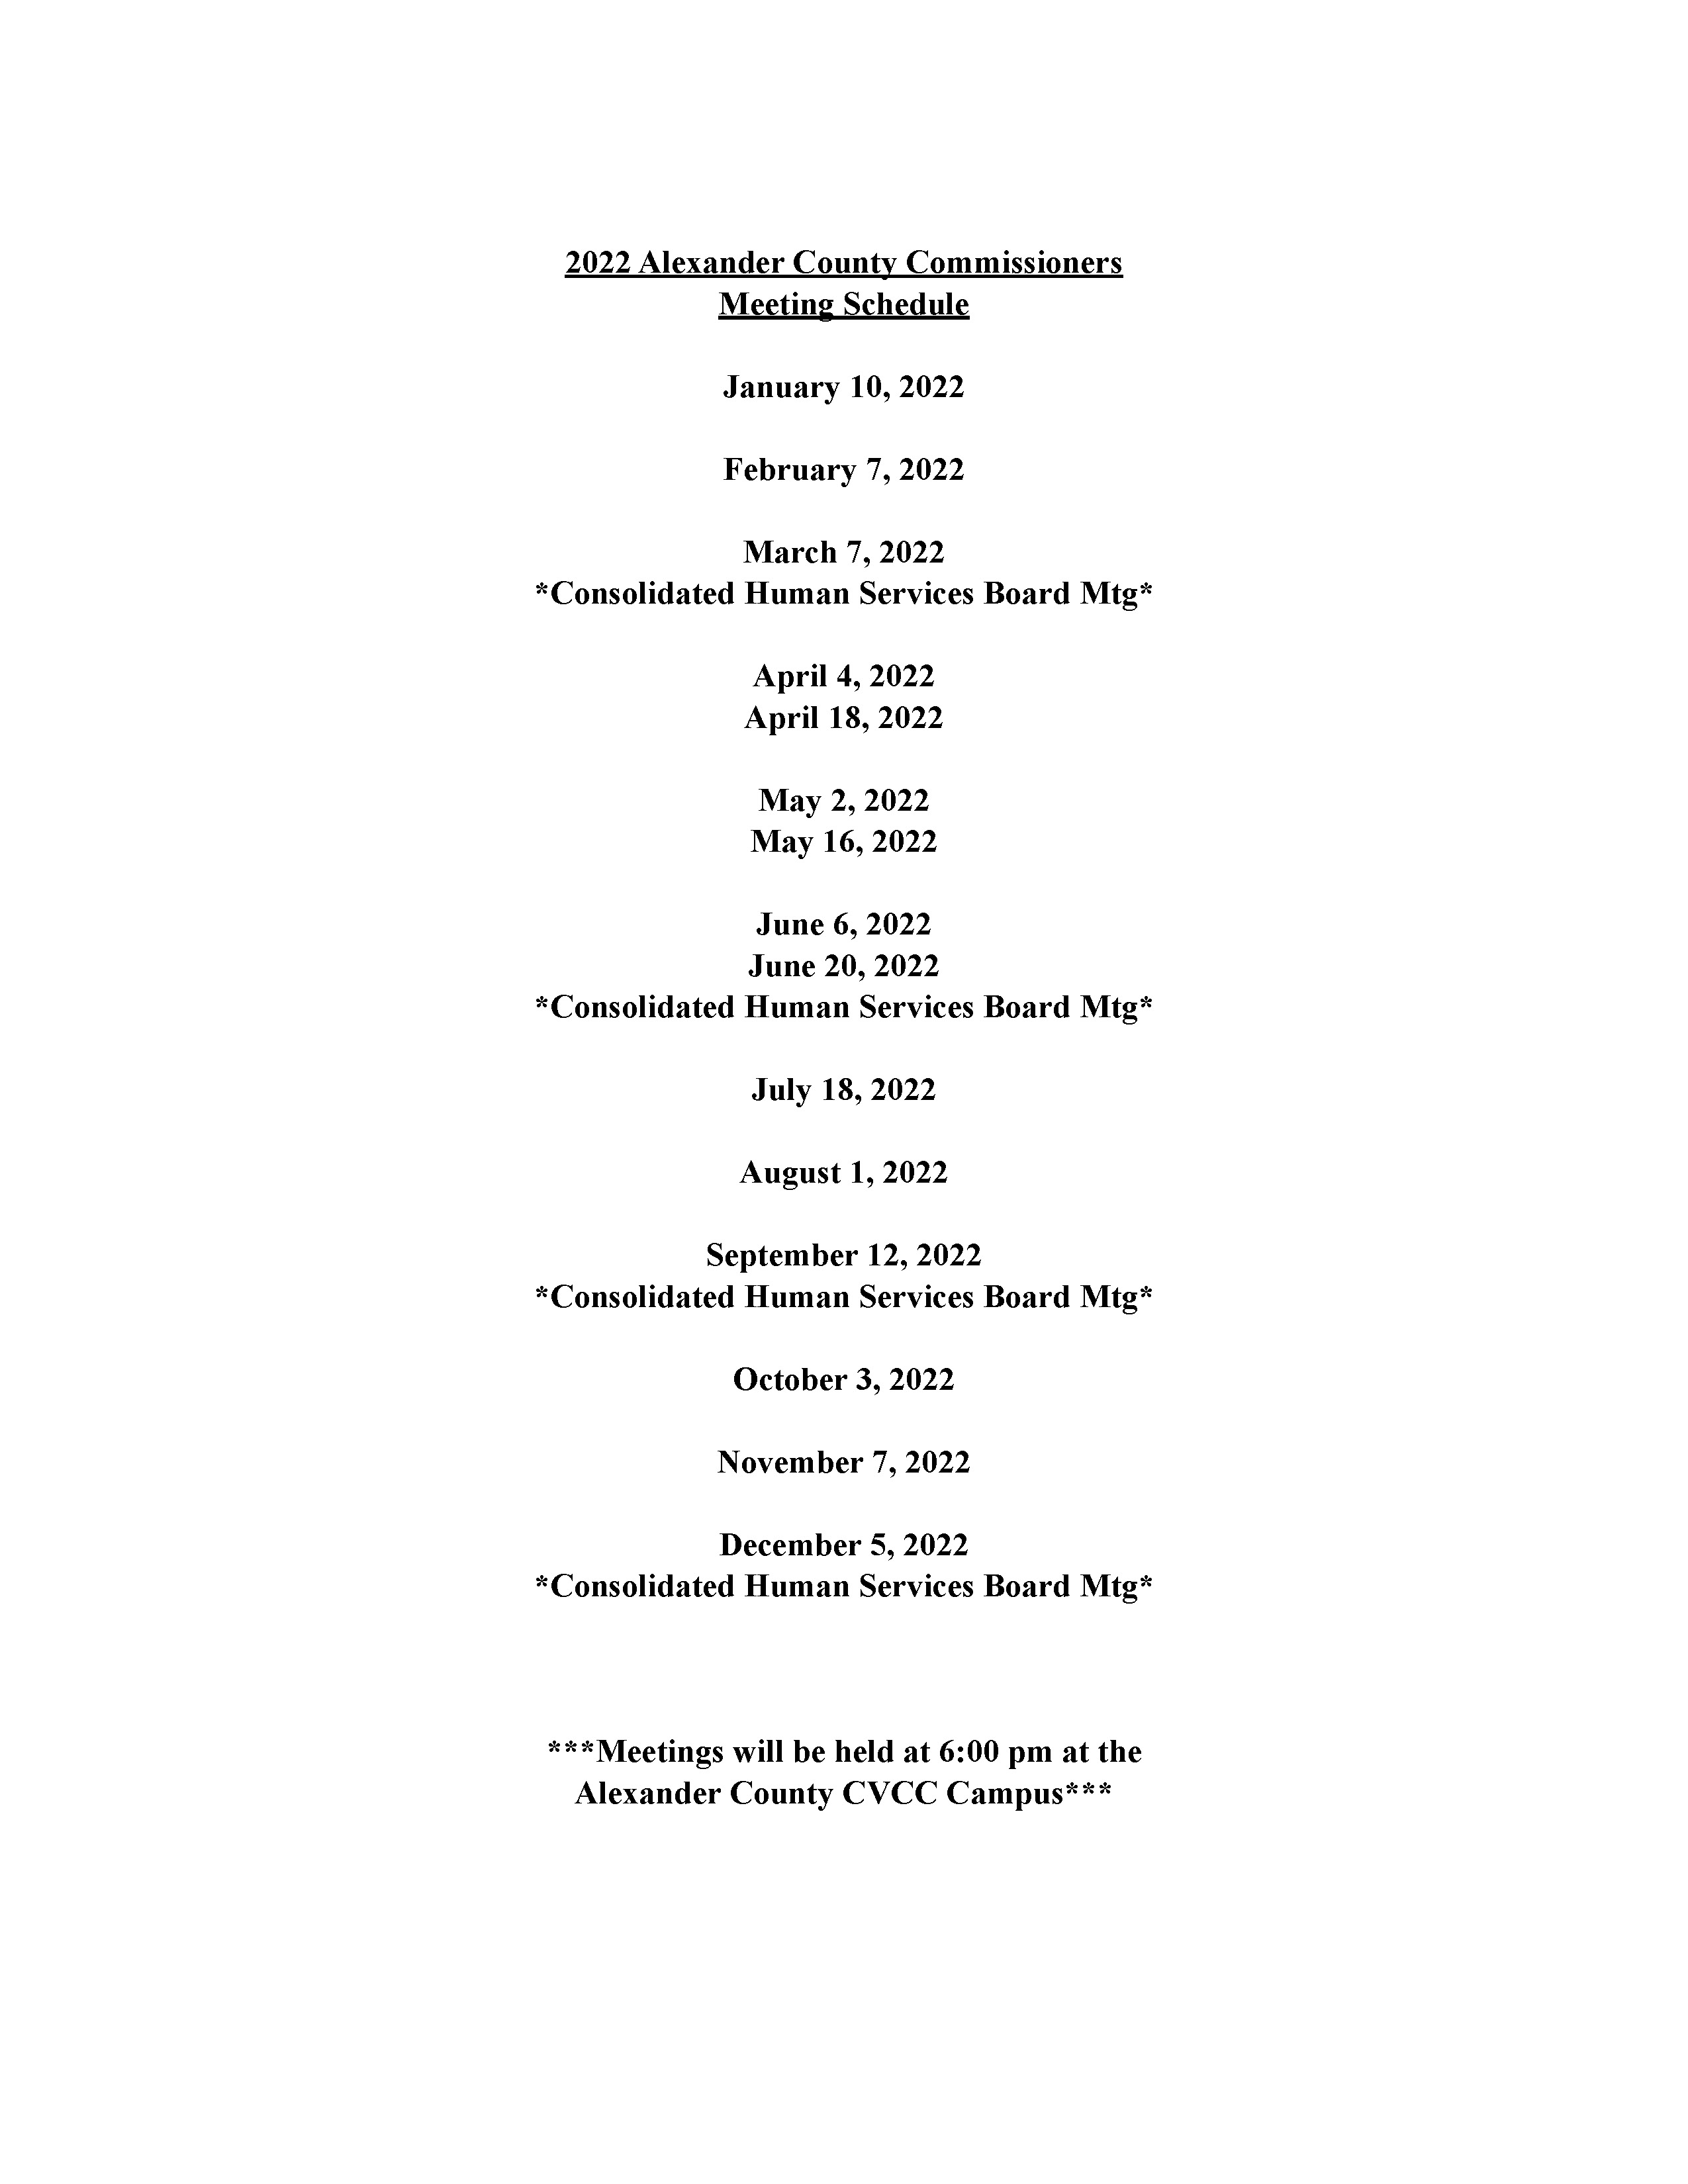 commissioners_meeting_schedule